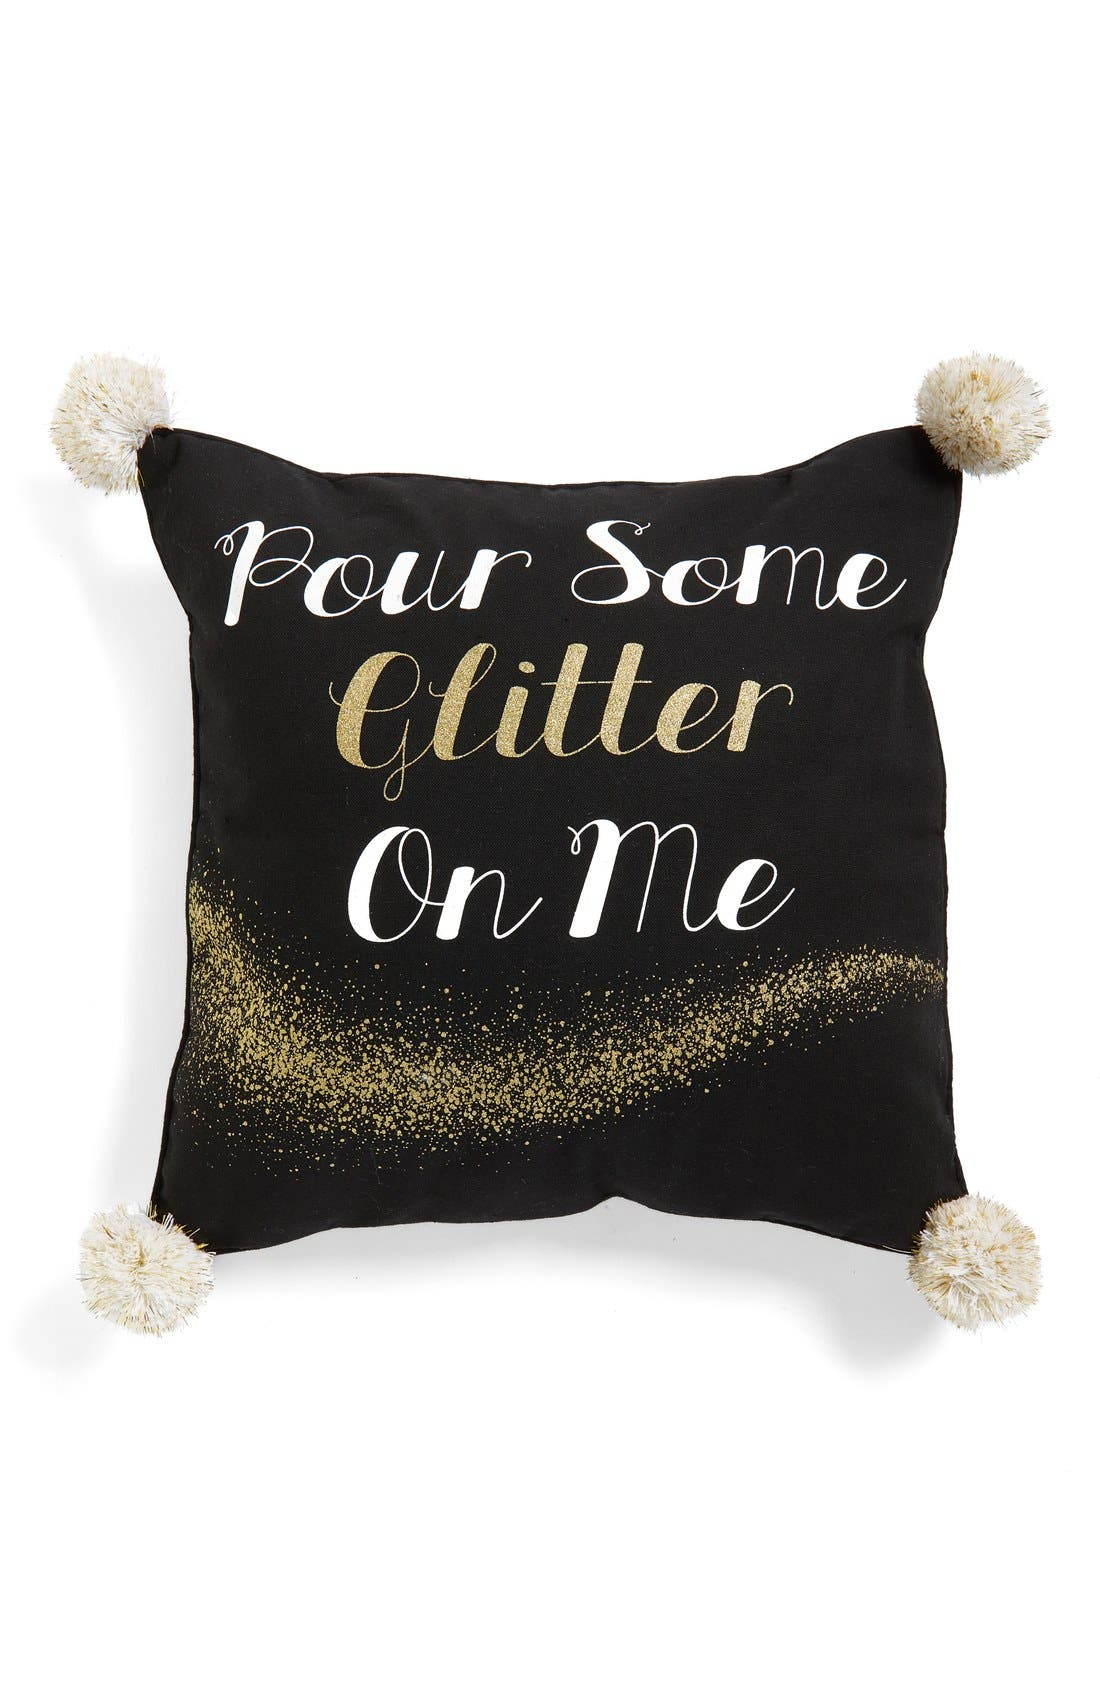 Main Image - Levtex 'Pour Some Glitter On Me' Accent Pillow